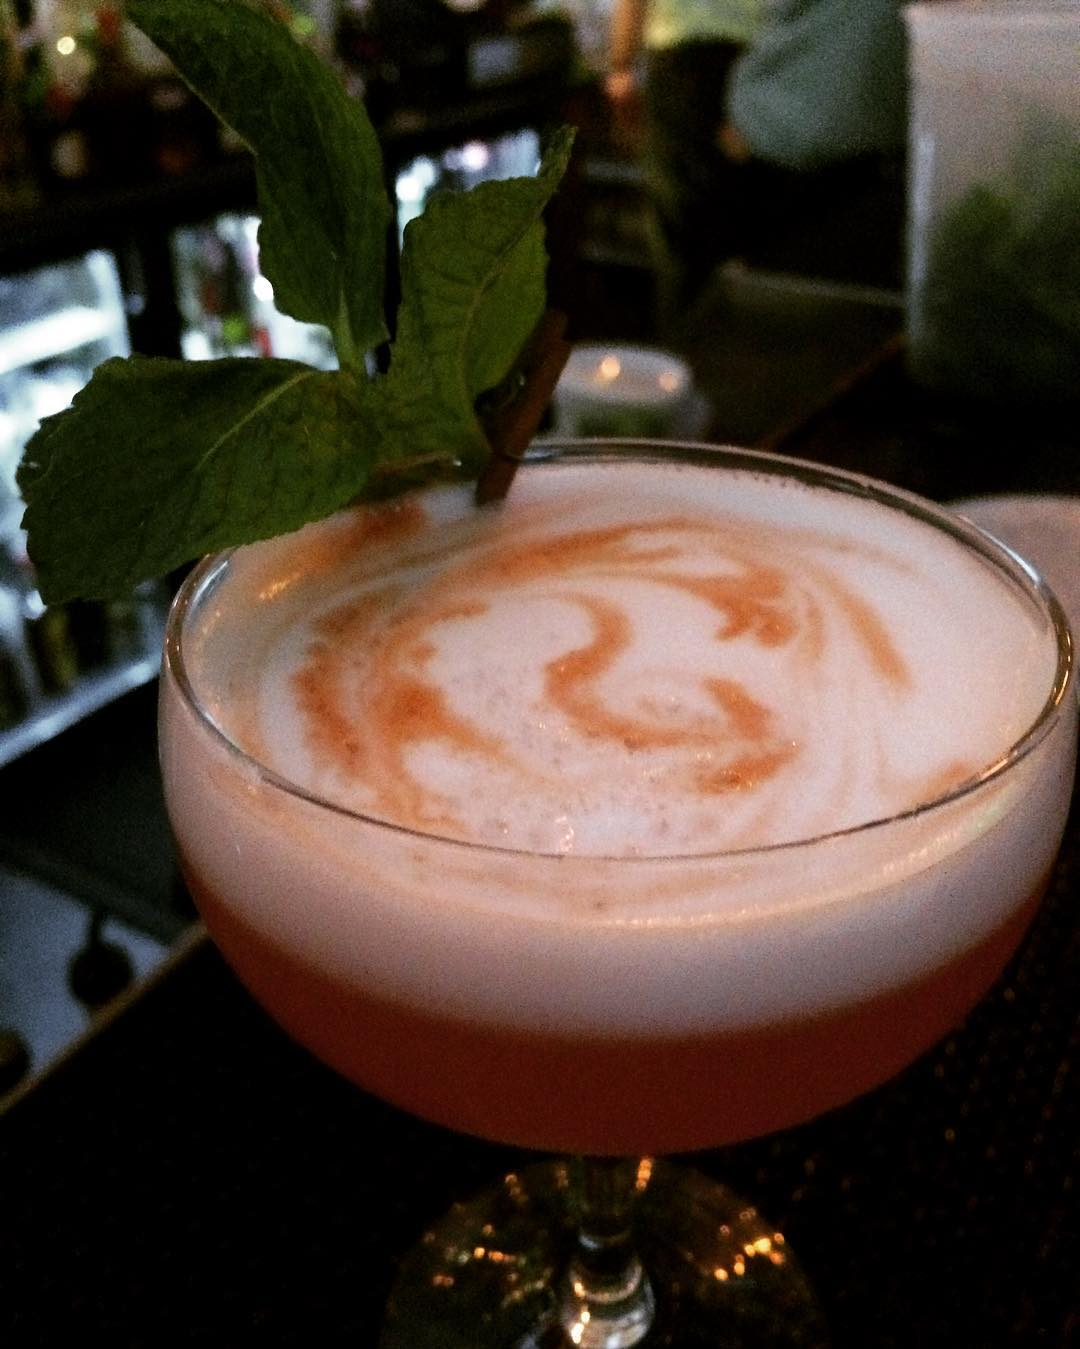 """For a nice touch of summer come try a """"Let's Draw Straws."""" Strawberry-infused #barsolpisco lemon, lime, simple syrup, egg white. #cocktails #localwhiskeybar #barsol #cocktailhour #bartending #mixing #summercocktails"""